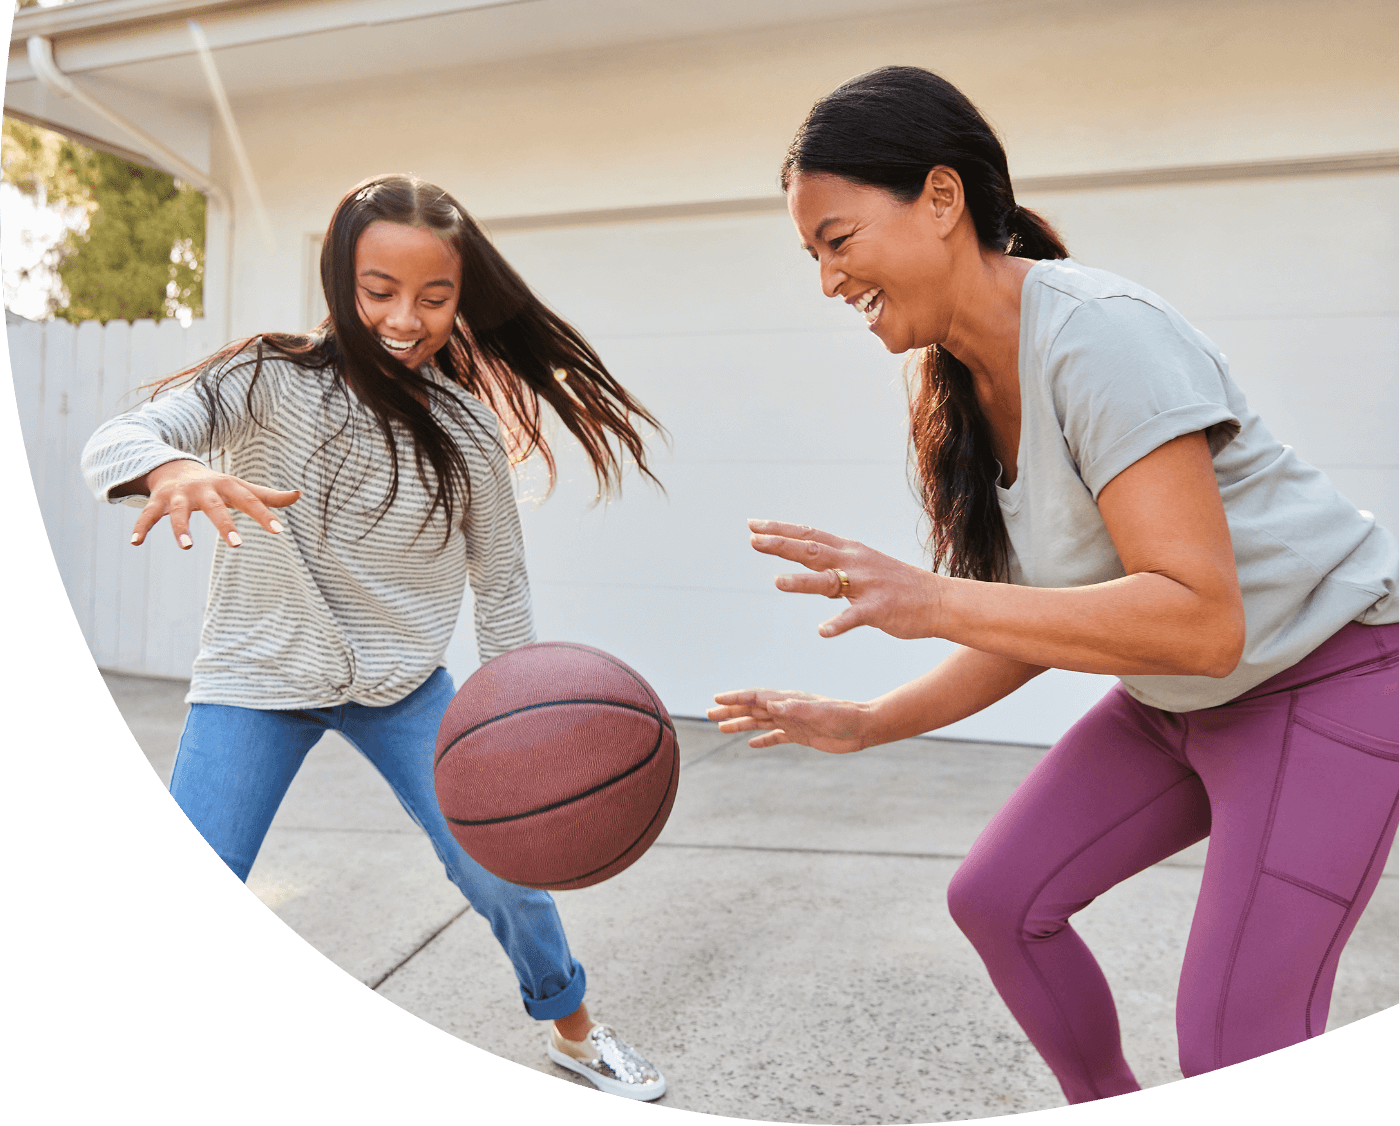 Daughter and mother playing basketball